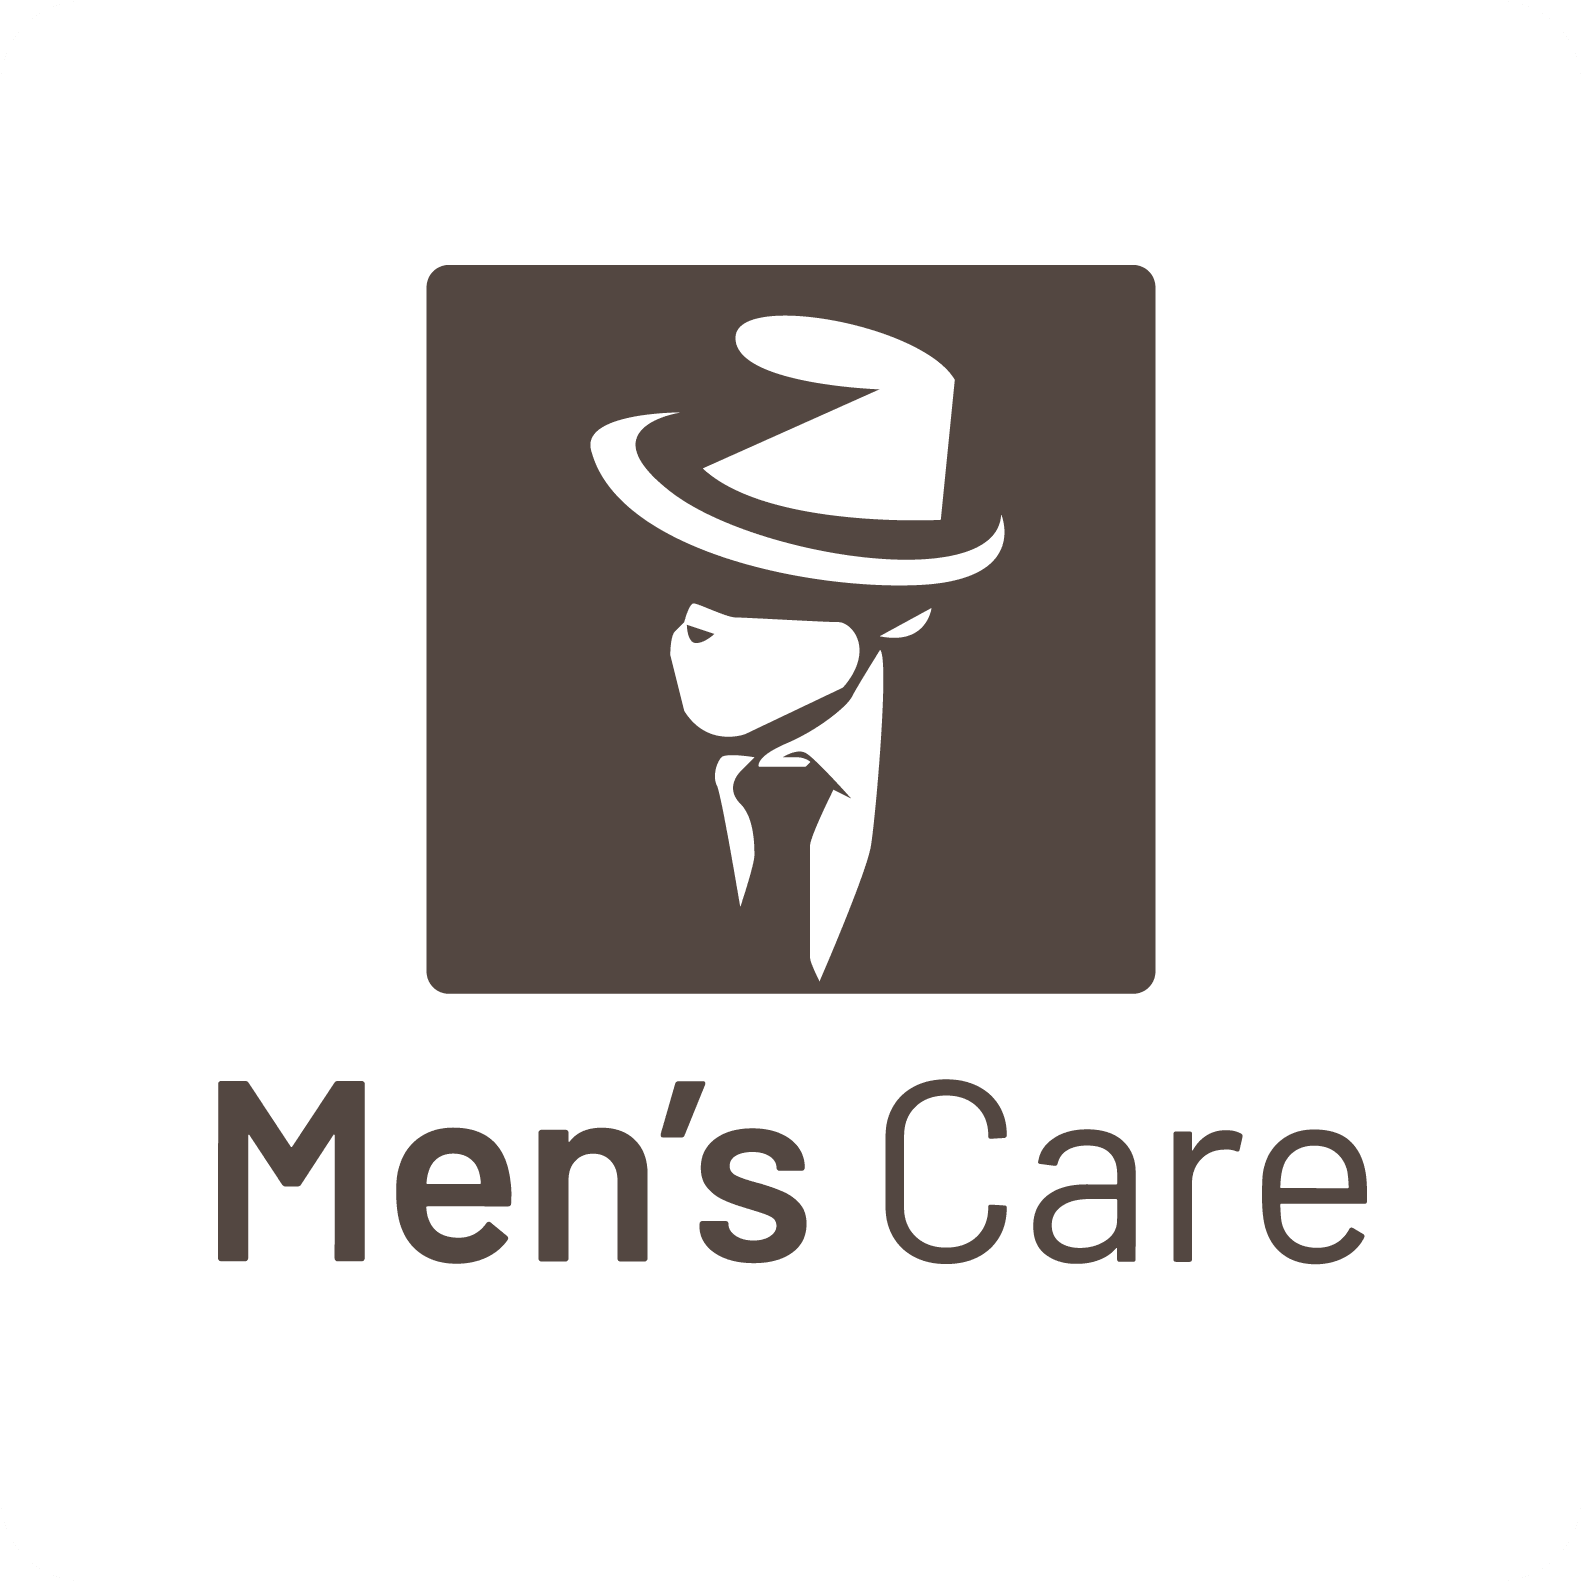 Image for men's care category